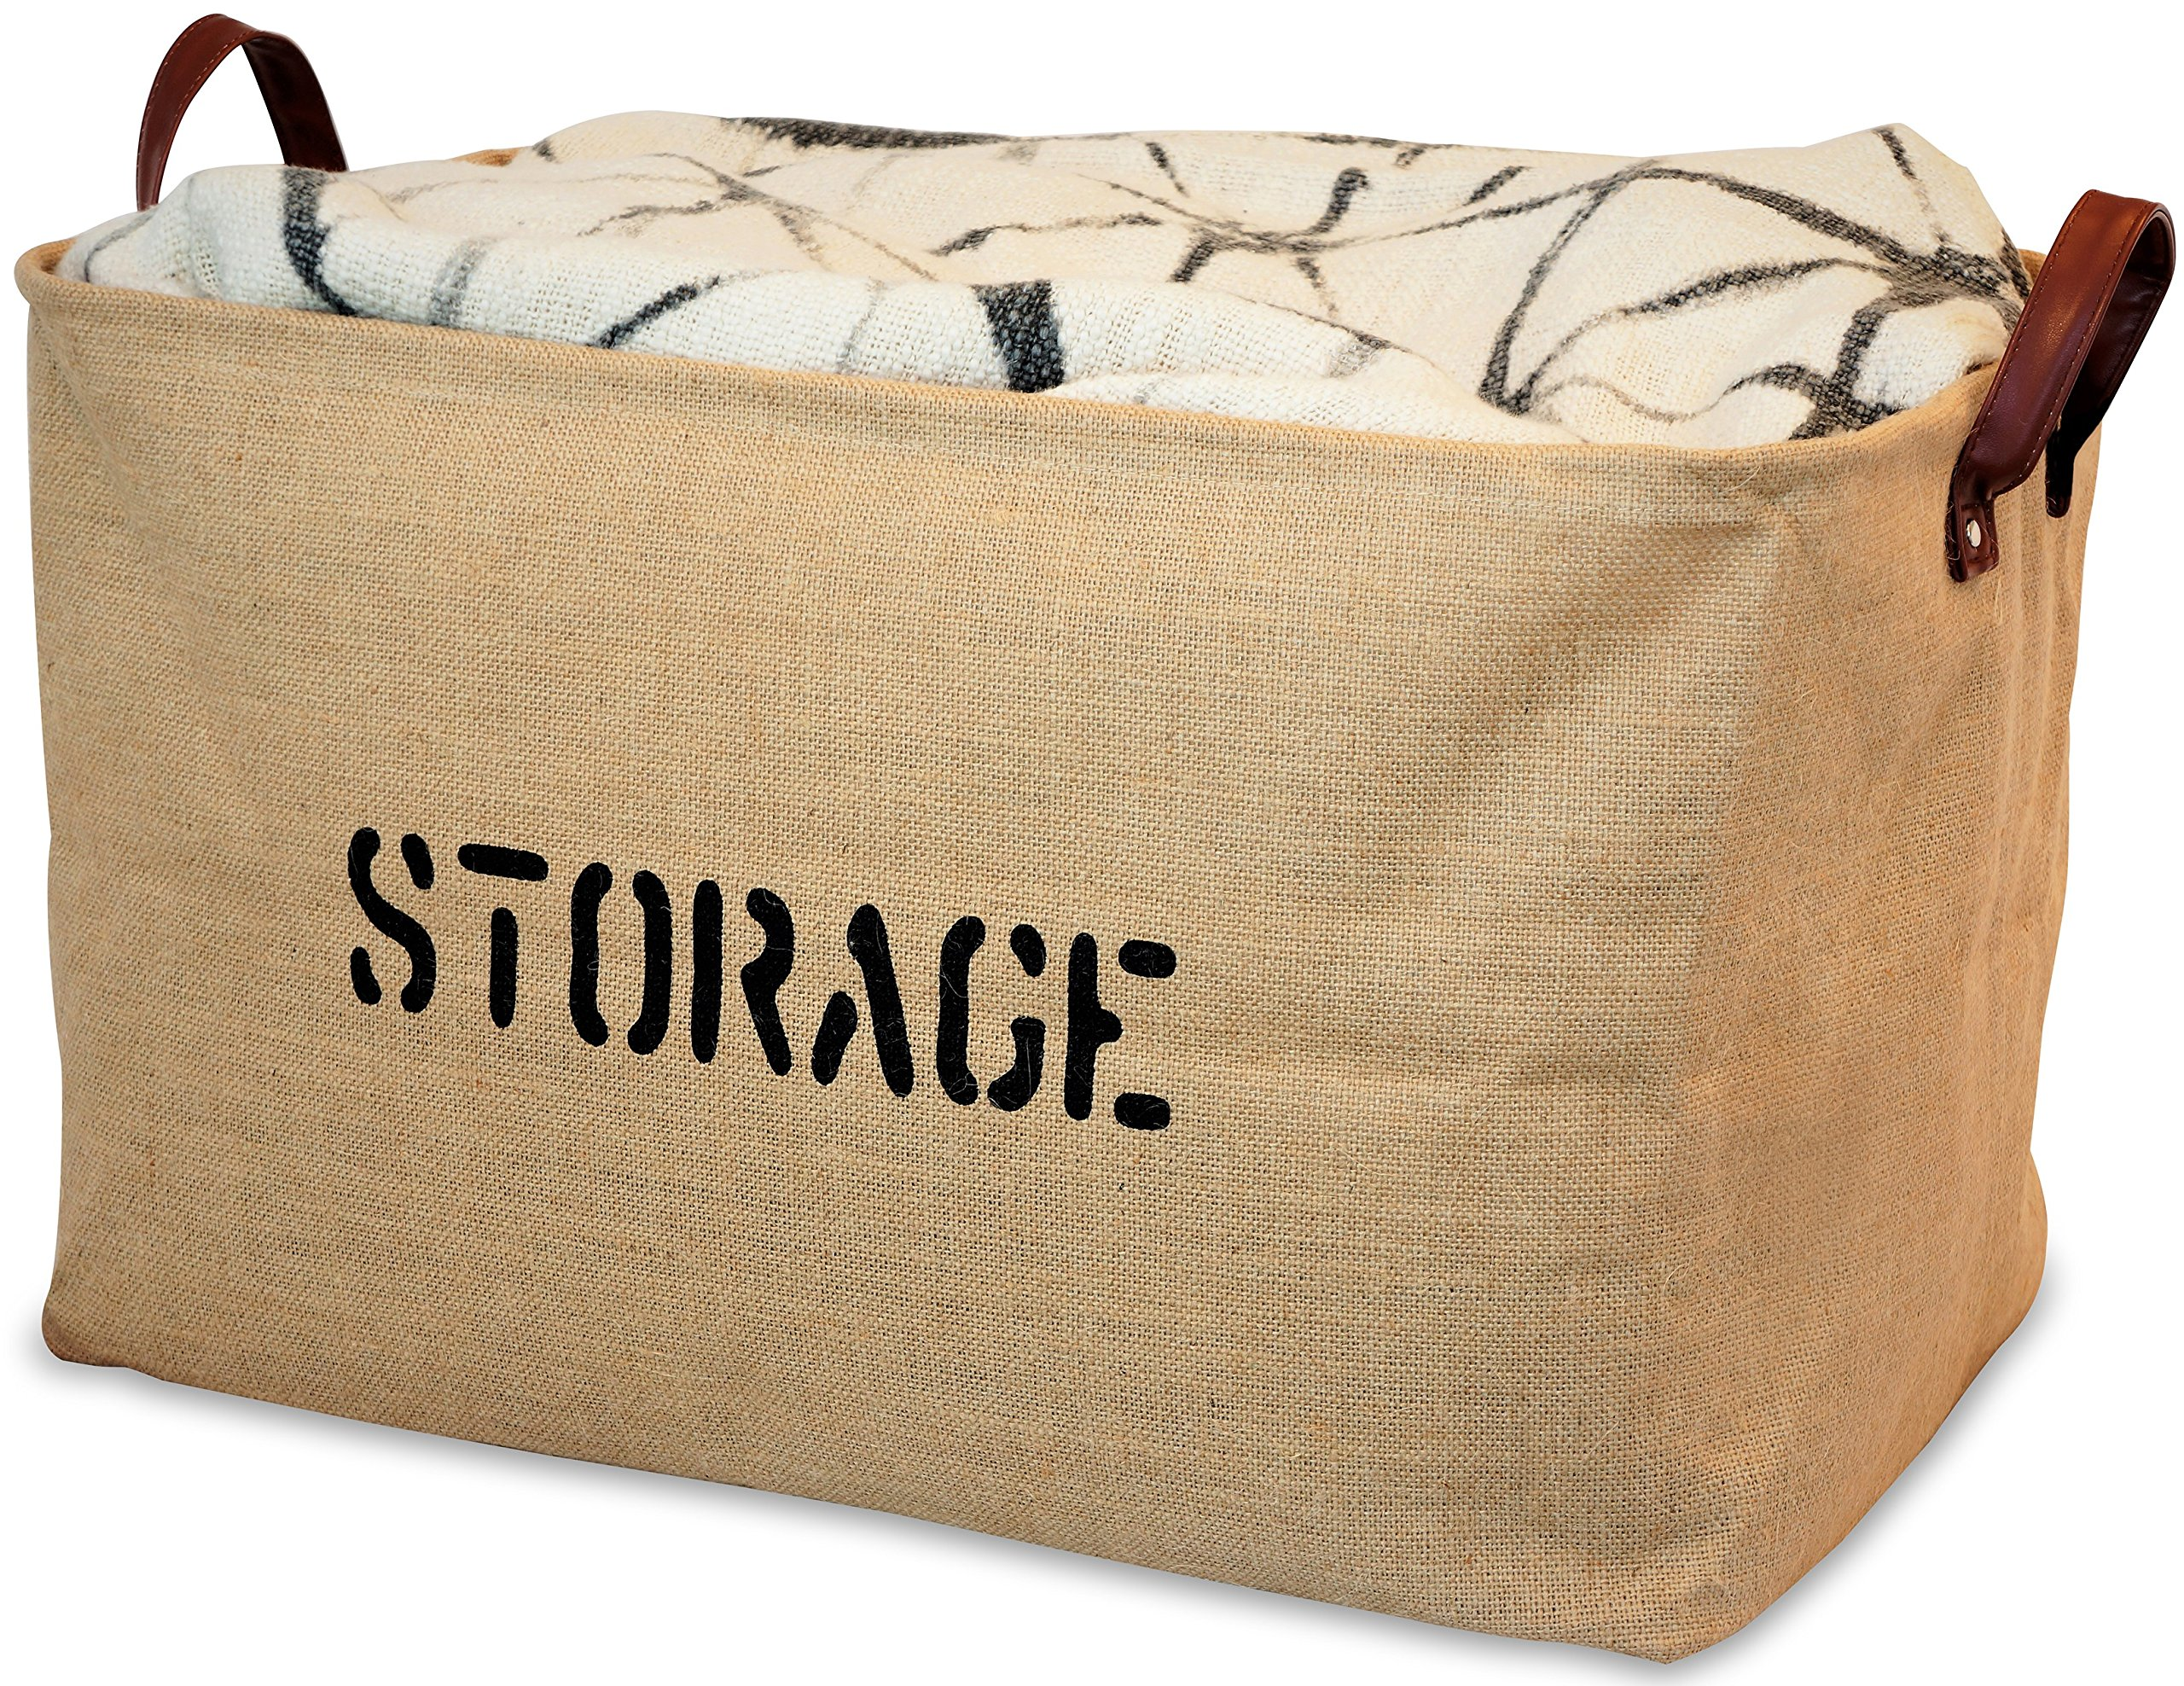 New Organizerlogic Storage Bins  22 X 15 X 14